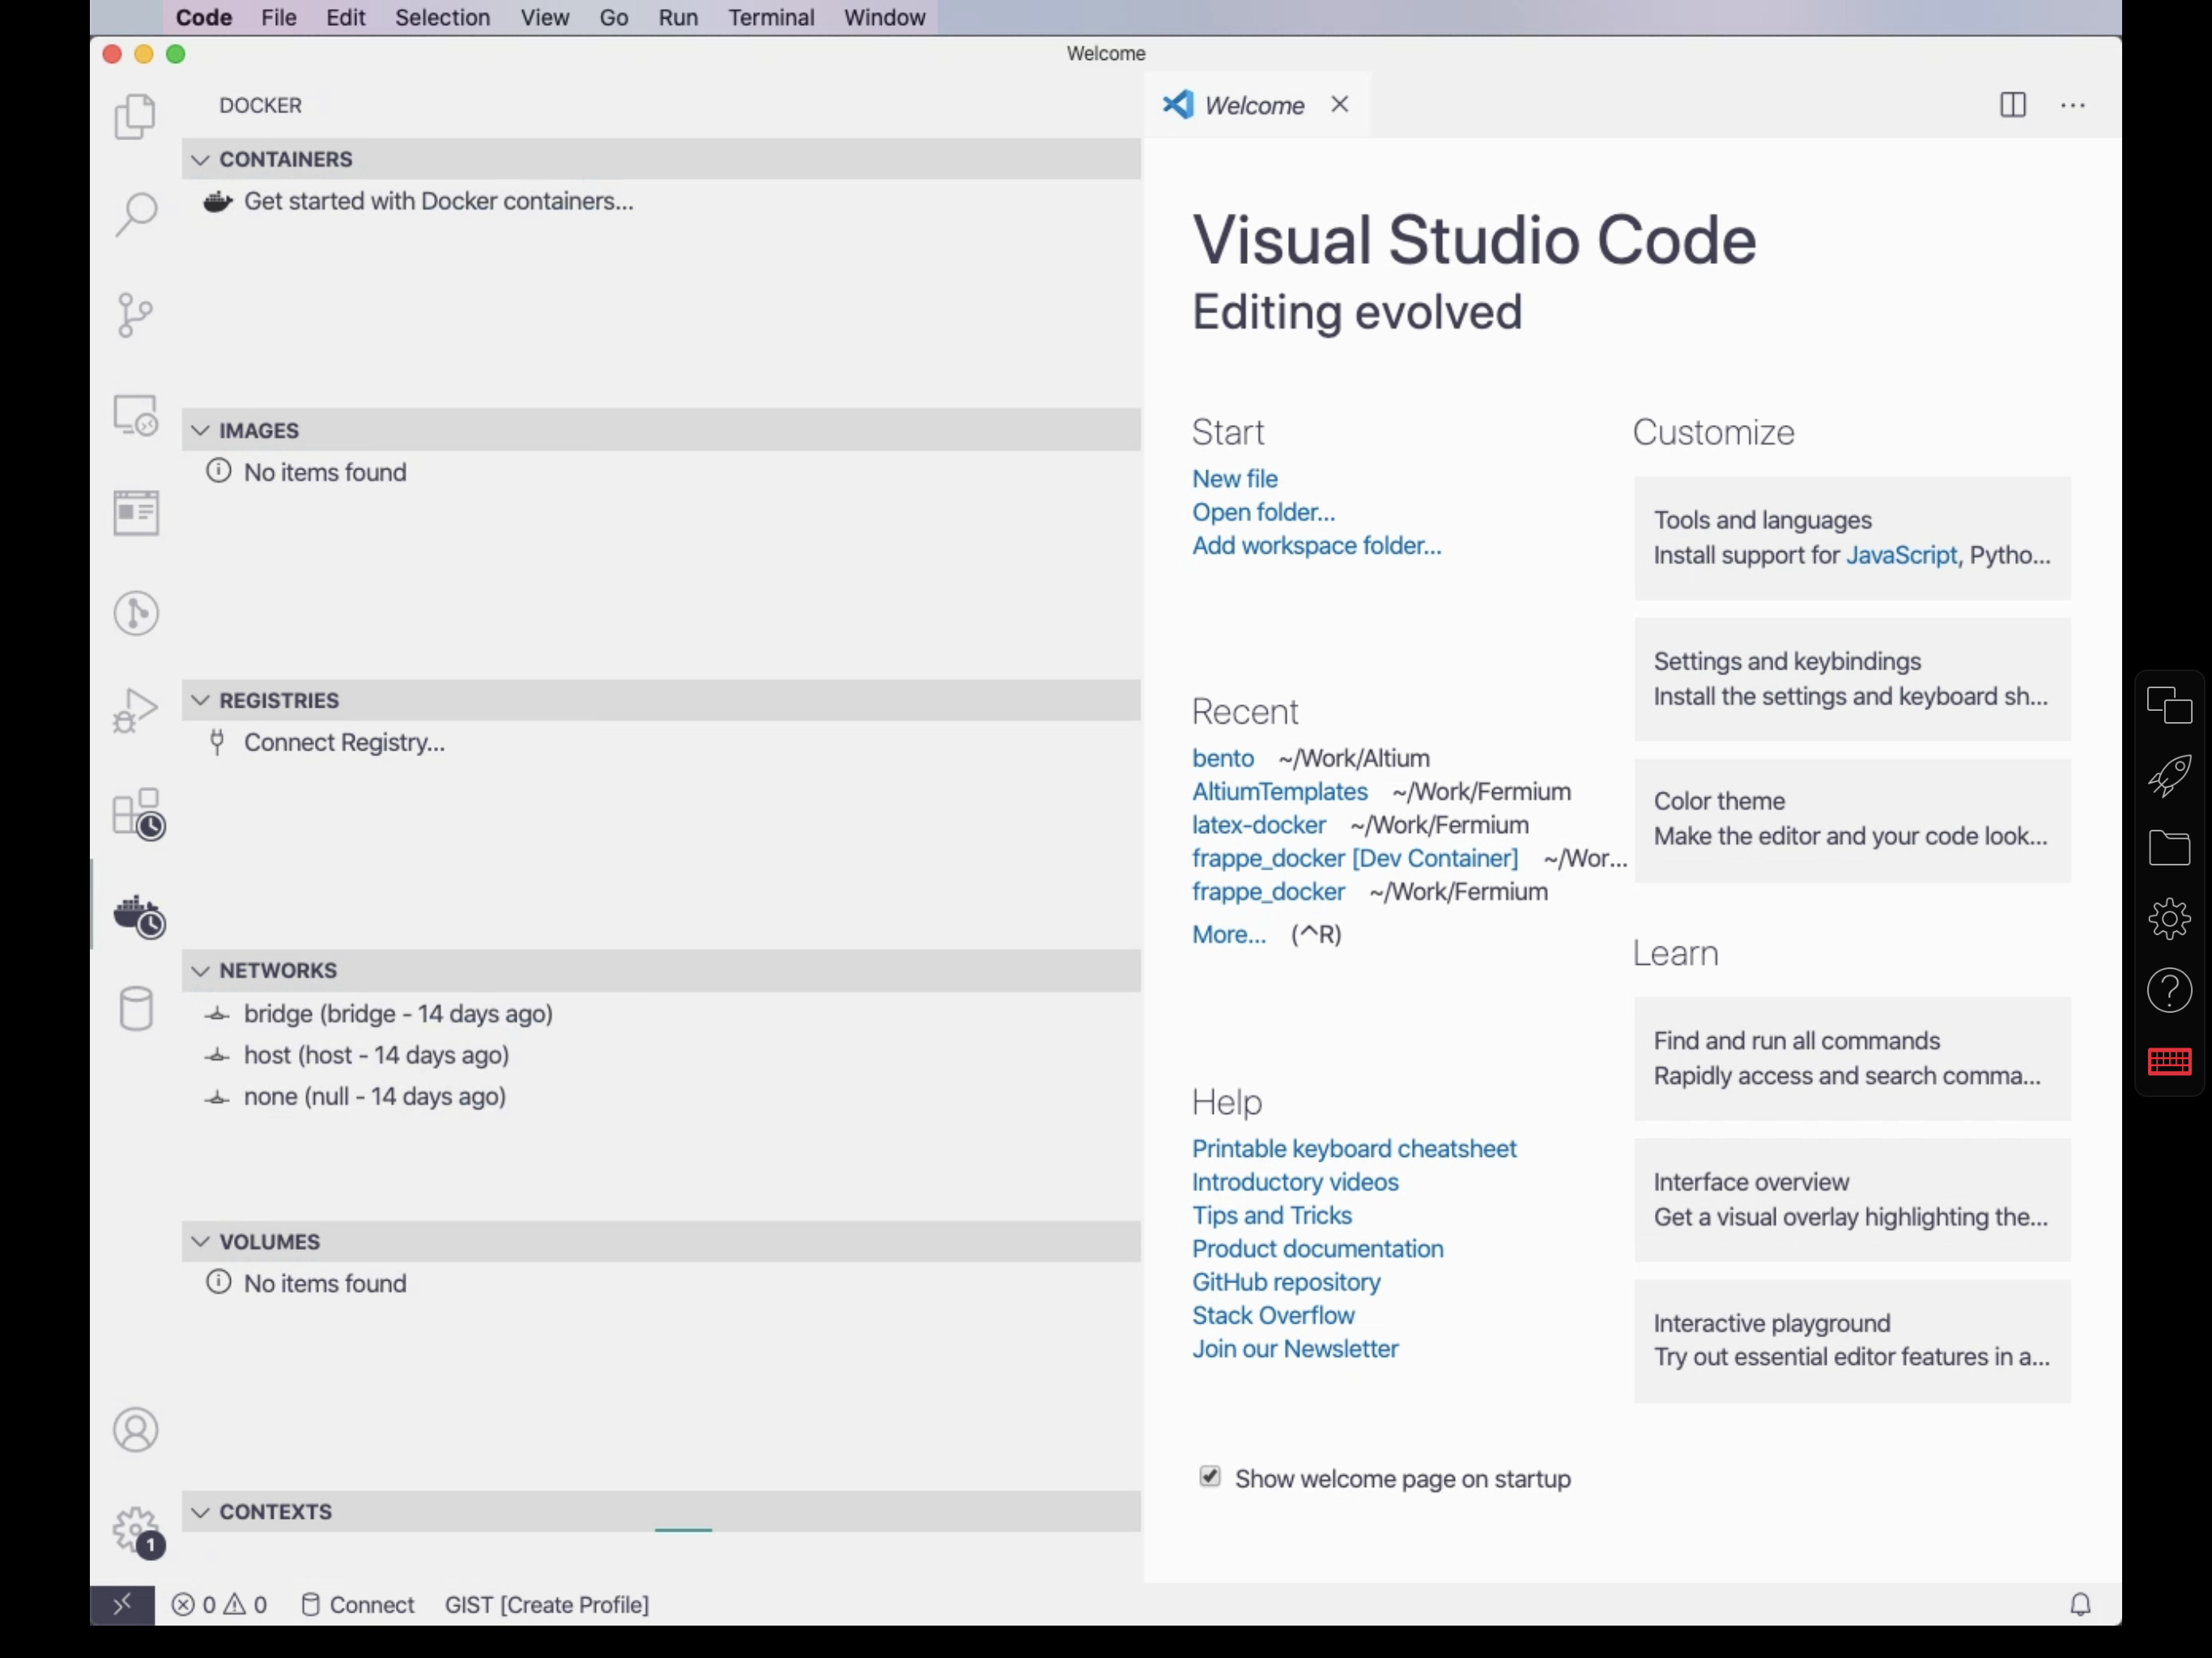 Parallels Access accessing Visual Studio Code from my MacBook Pro at home